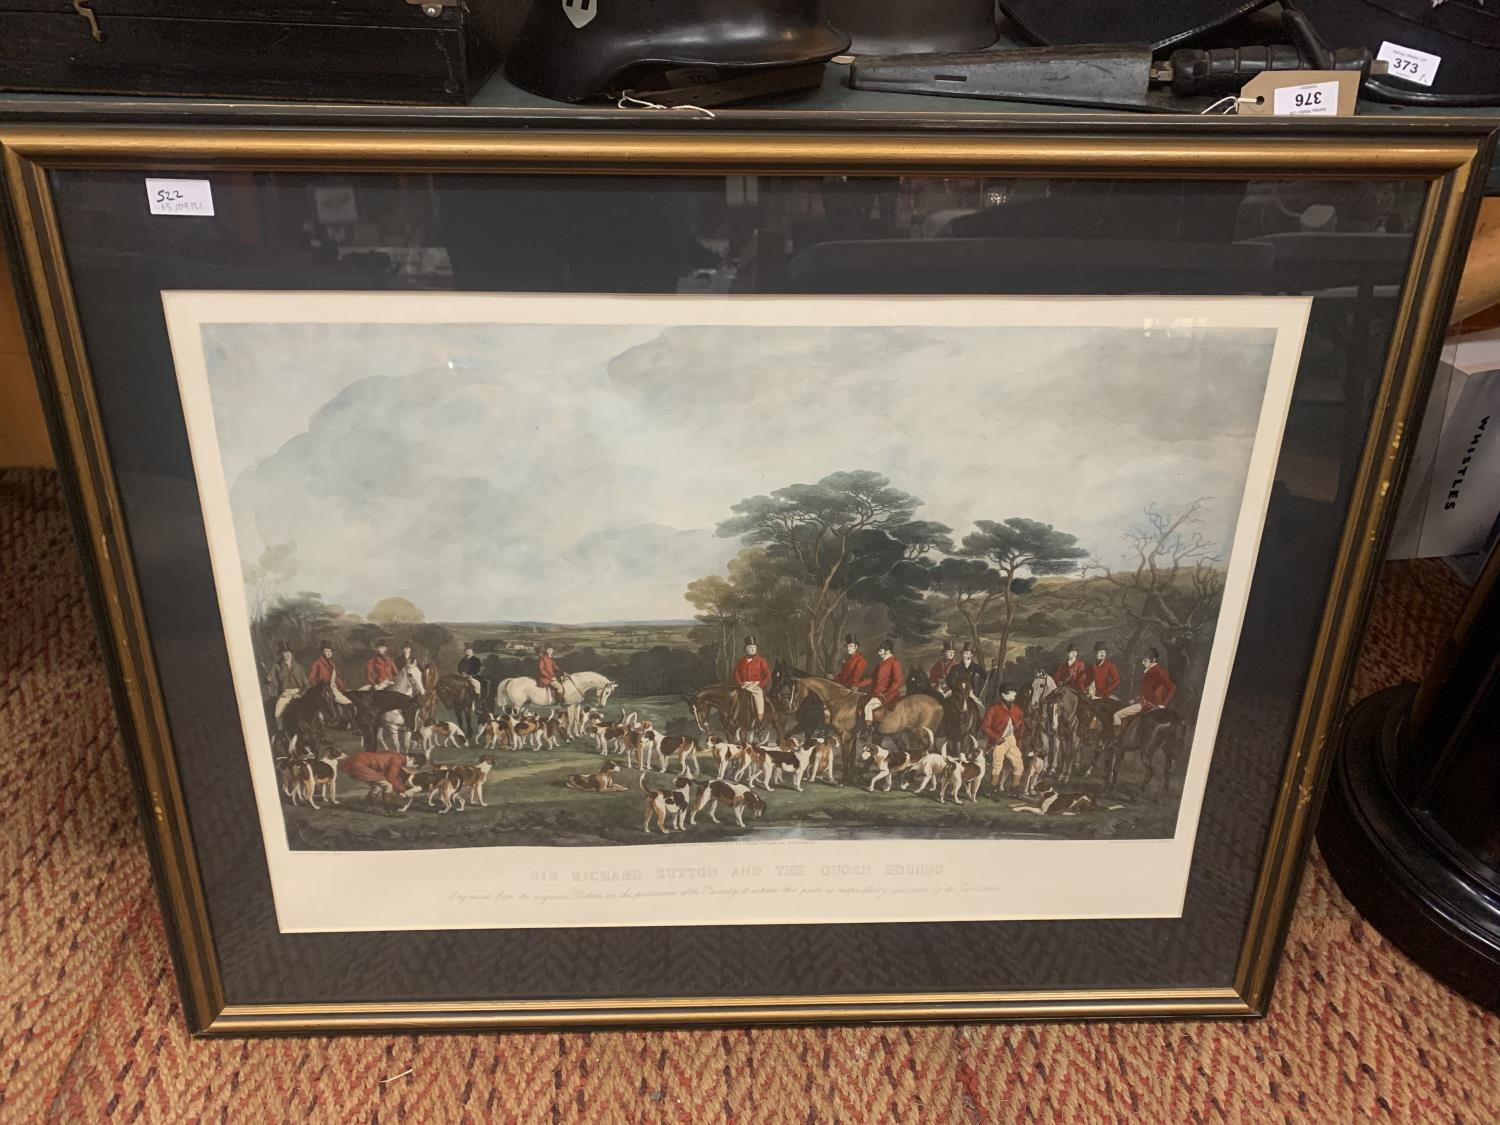 A FRAMED ETCHING OF SIR RICHARD HUTTON AND THE QUORN HOUNDS - Image 2 of 8